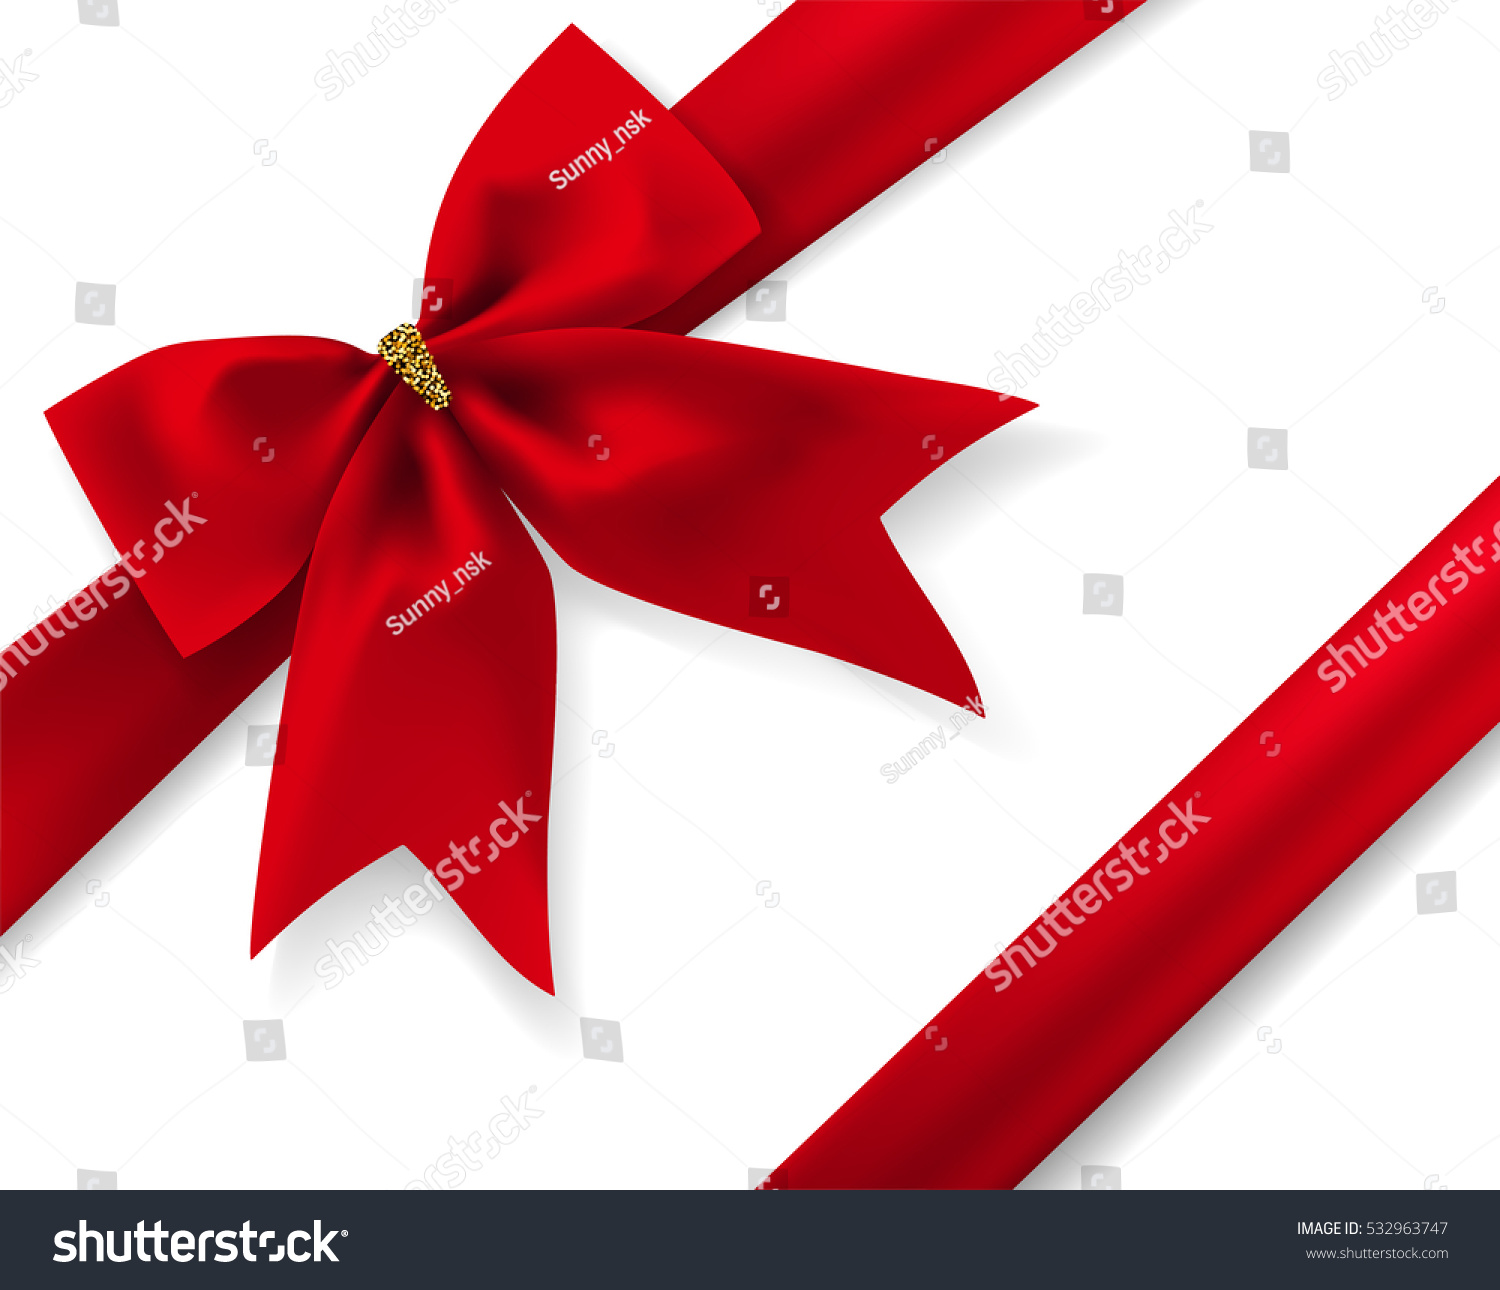 Red gift bows border with clipping path for easy background removing - Beautiful Red Diagonal Bow With Ribbon And Transparent Shadow Isolated On White Background Vector Illustration Romantic